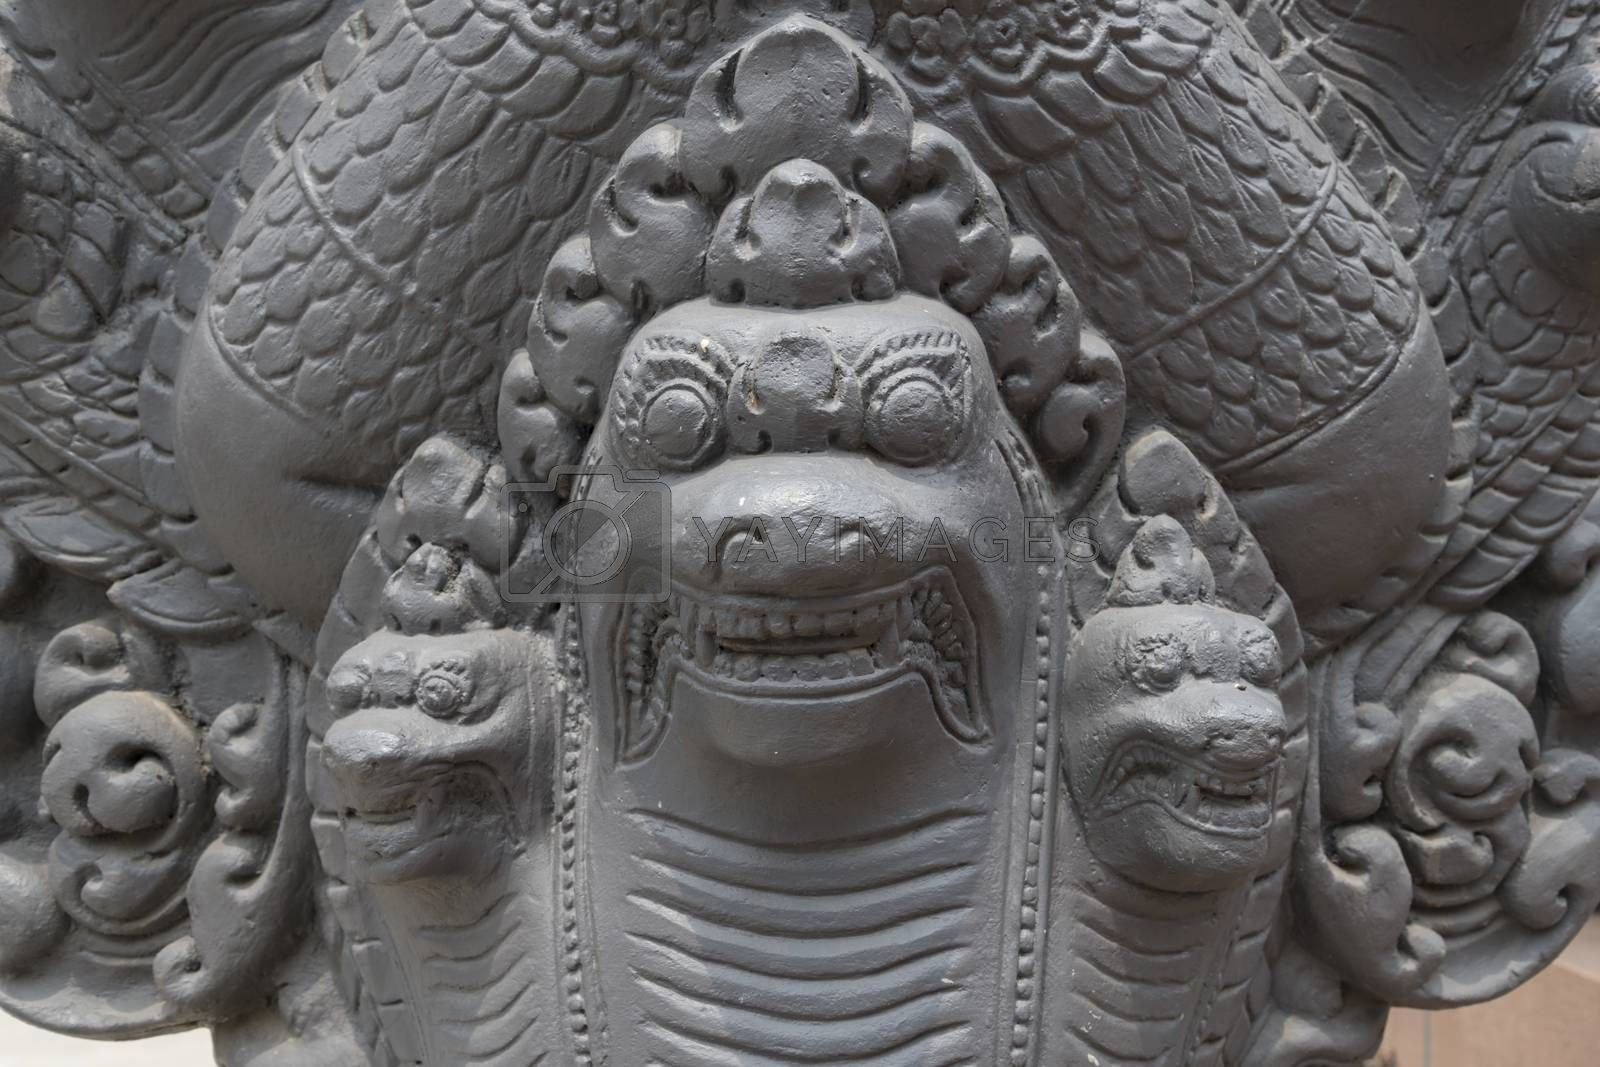 Details of a Mythical Seven-Headed Snake goddess, Khmer Naga sculpture, Buddhist temple Wat Preah Prom Rath in Siem Reap, Cambodia, Asia